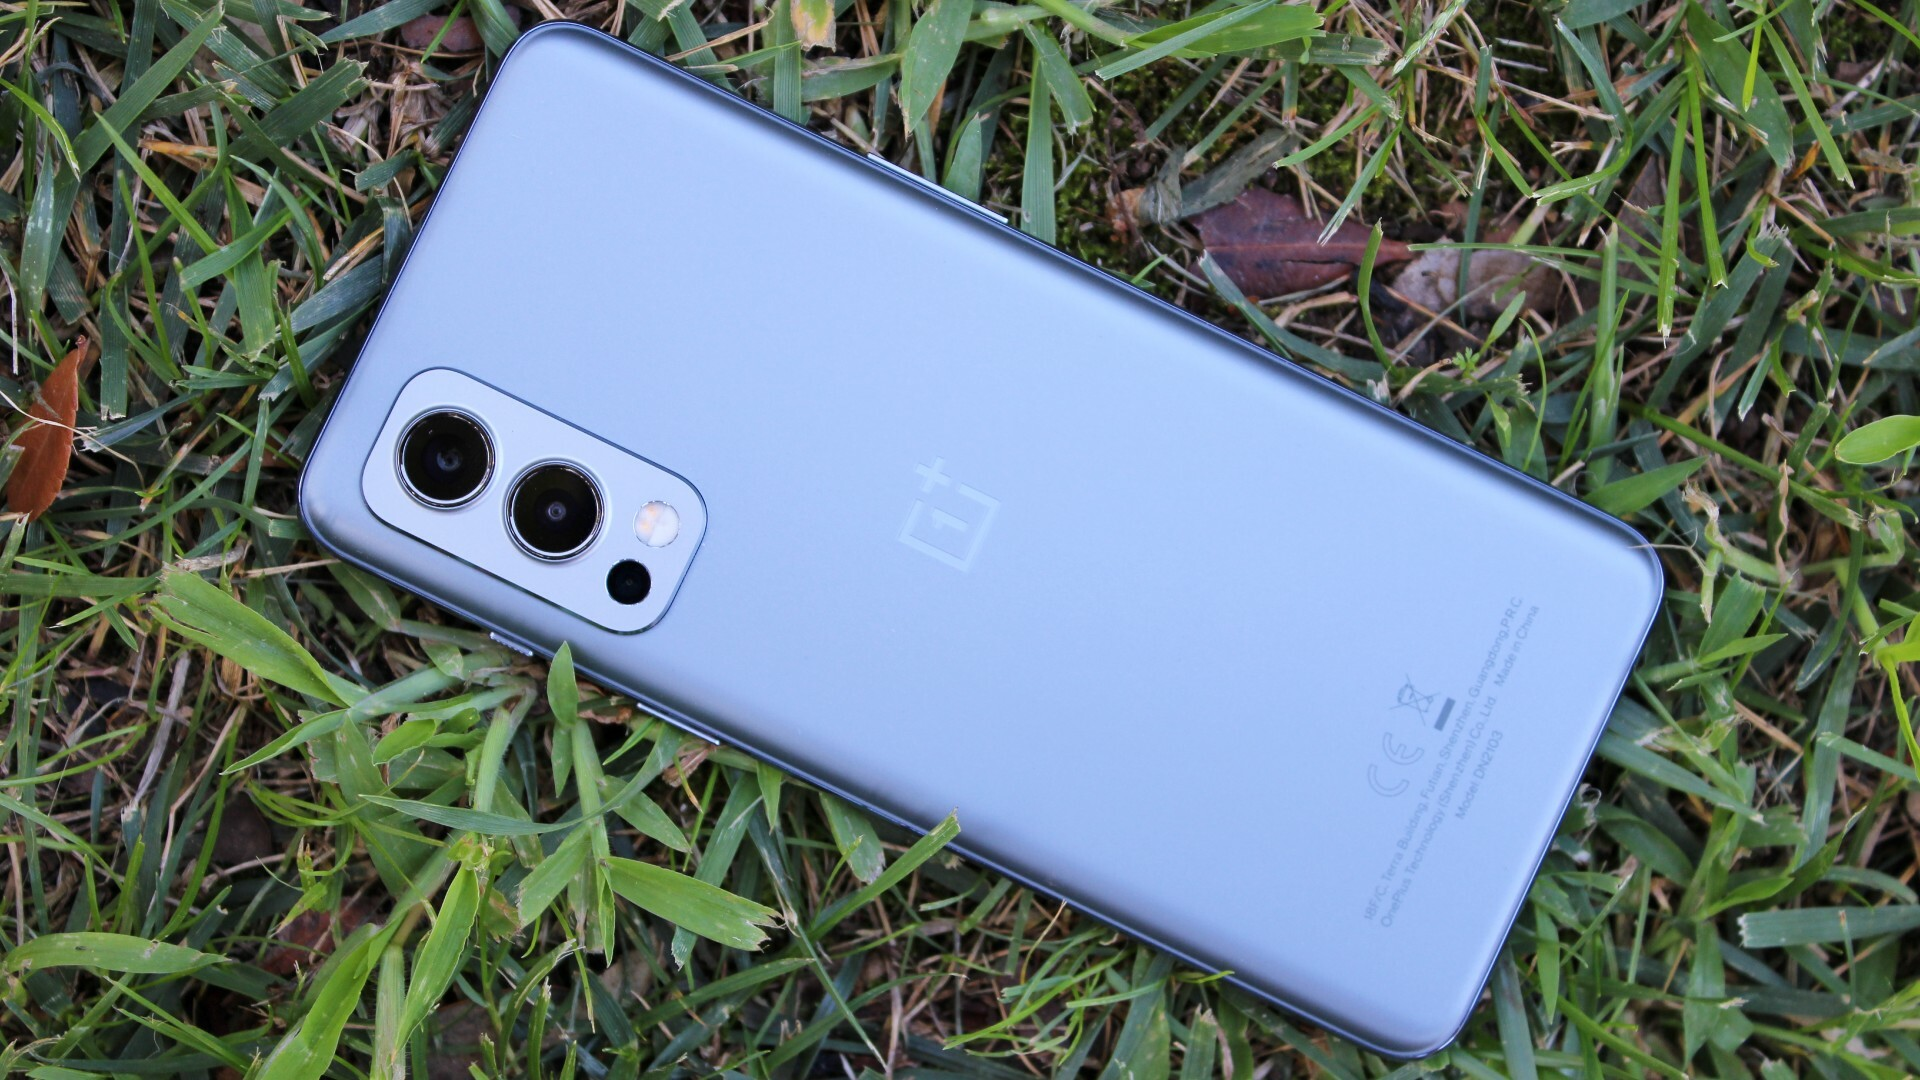 The OnePlus Nord 2 is not the world's most interesting phone, but it doesn't need to be.